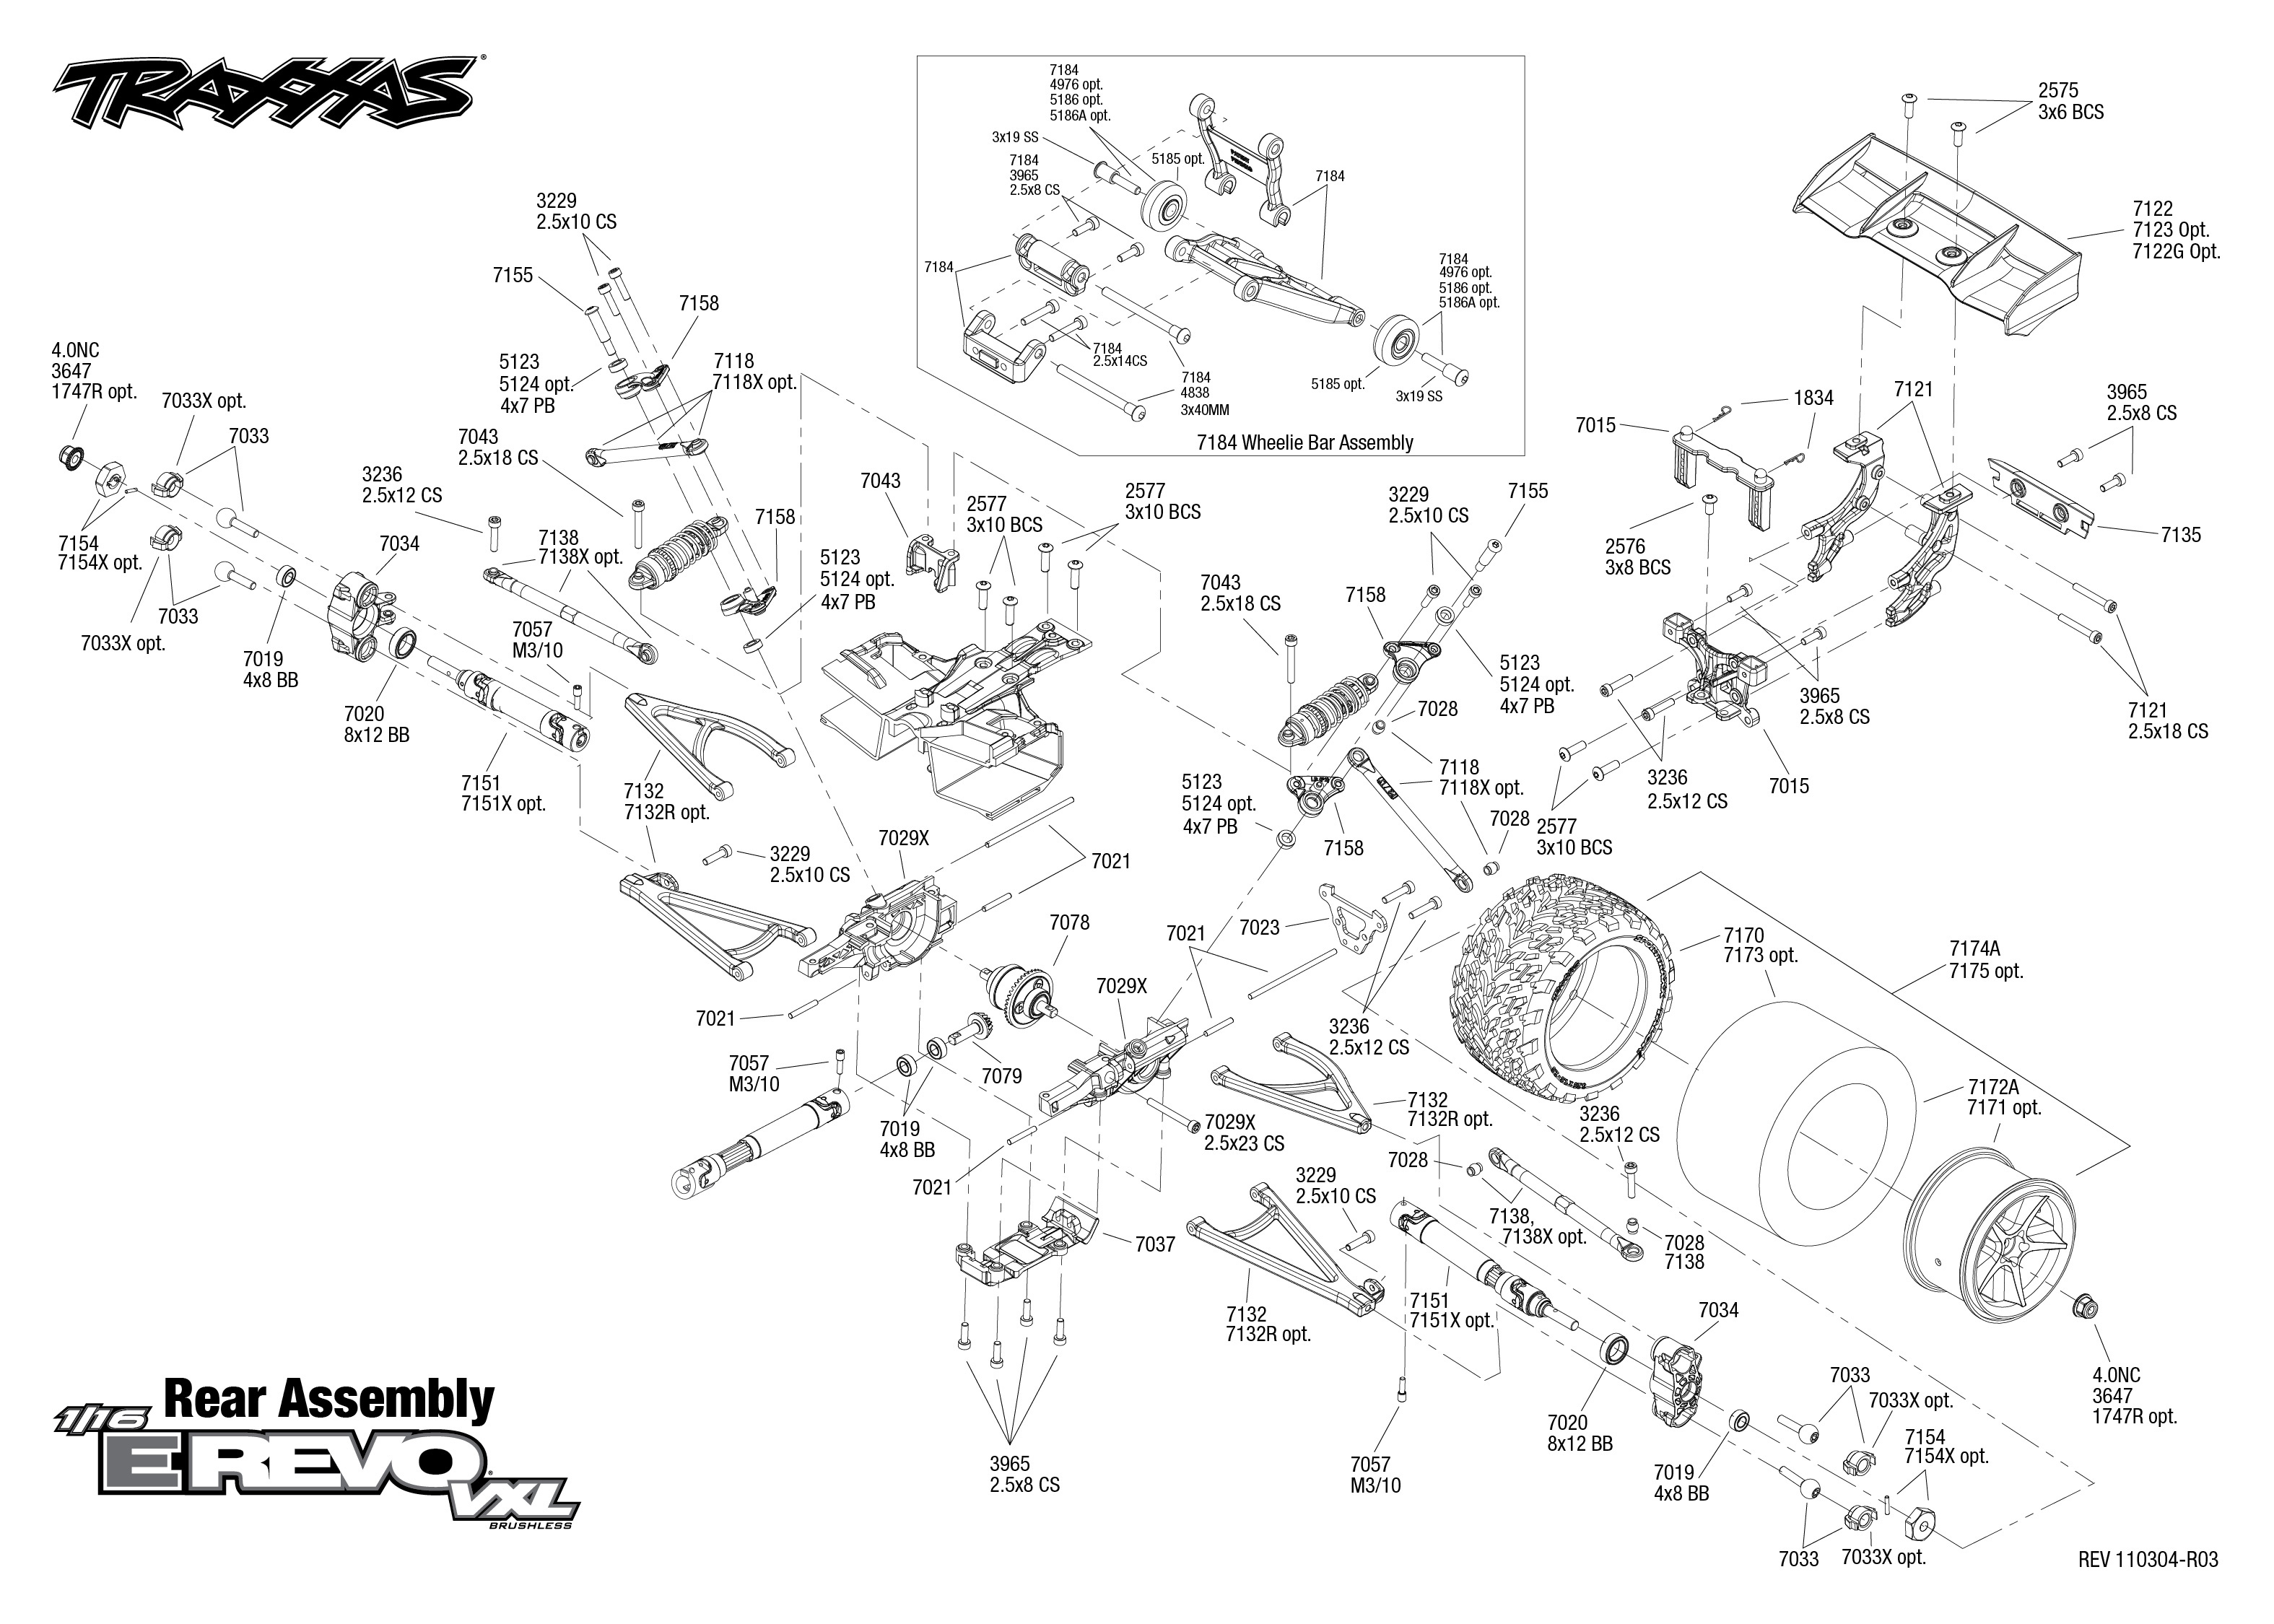 wrg 7297] traxxas slash wiring diagramrevo parts diagram reinvent your wiring diagram u2022 rh kismetcars co uk traxxas e revo brushless